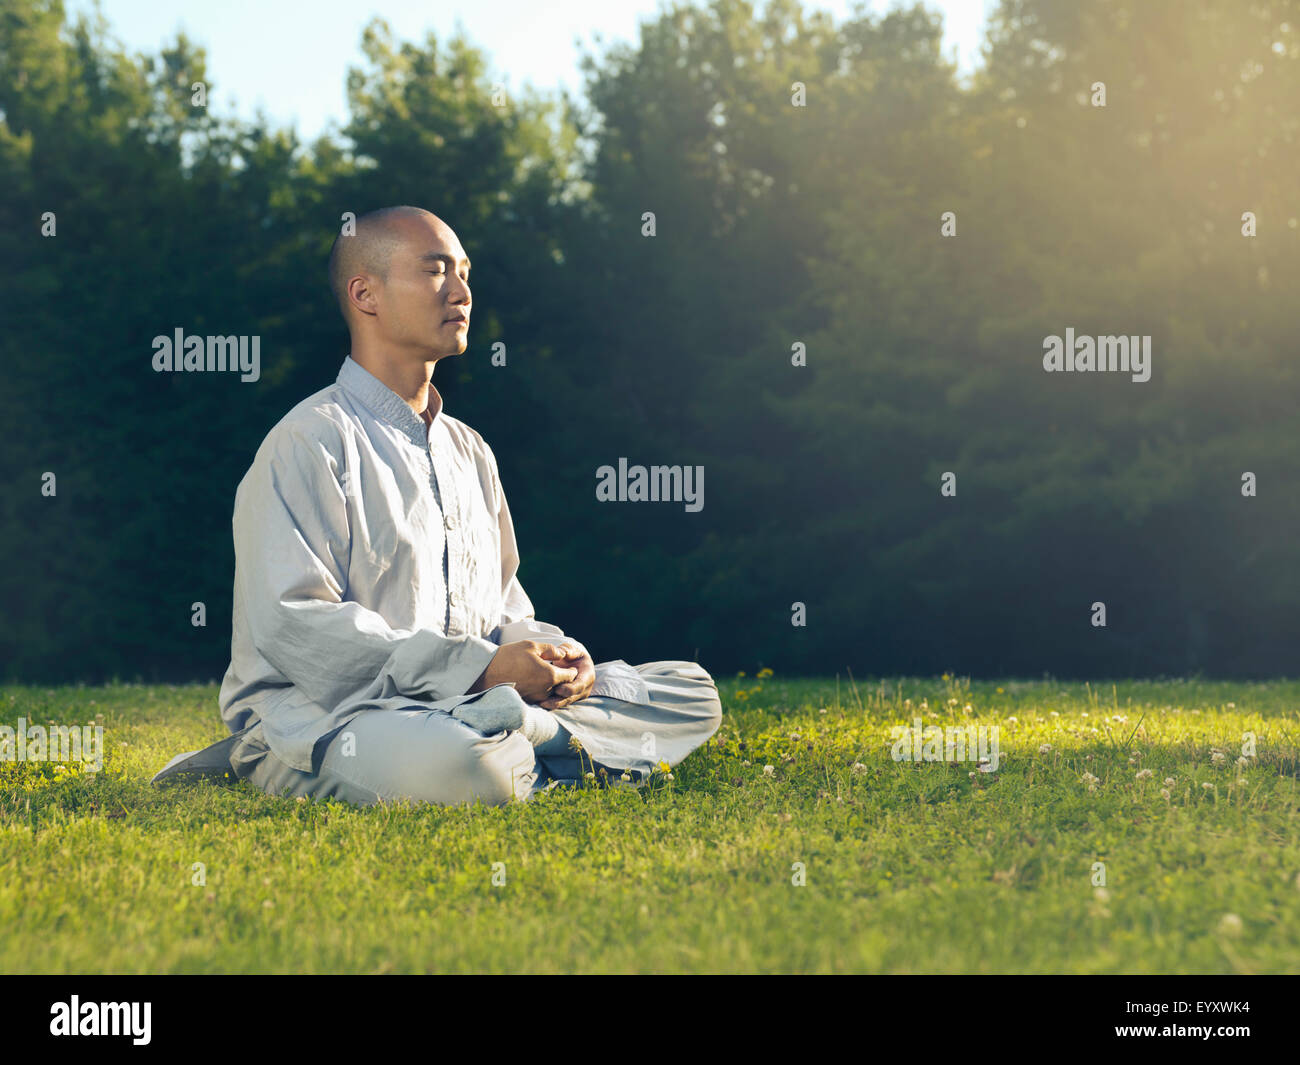 Shaolin monk meditating outdoors in the nature during sunrise sitting on grass in sunlight - Stock Image